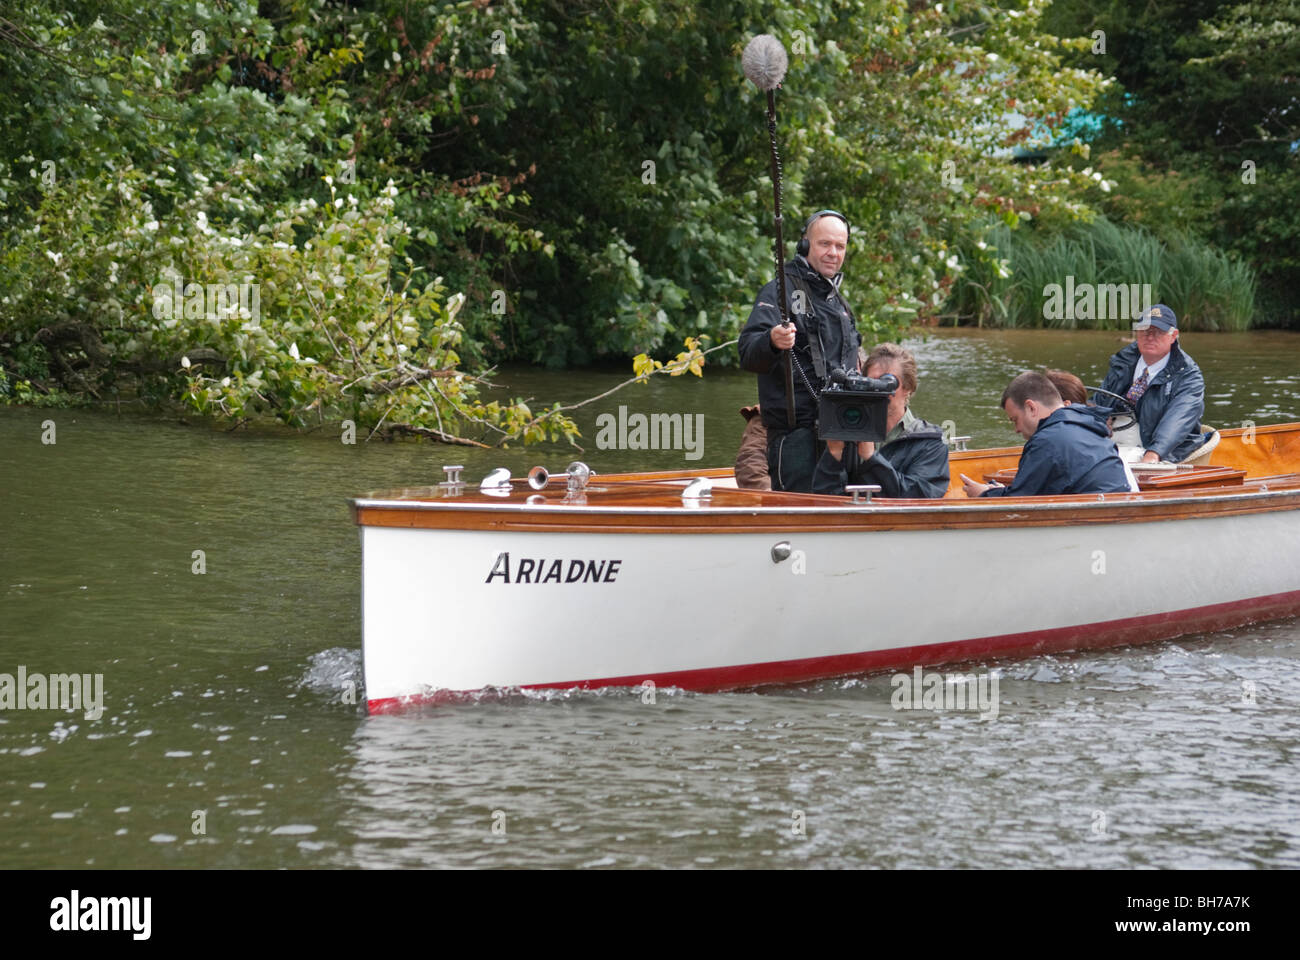 Television Camera Crew filming from a moving boat on the River Thames in Oxfordshire during the annual Swan Upping. - Stock Image